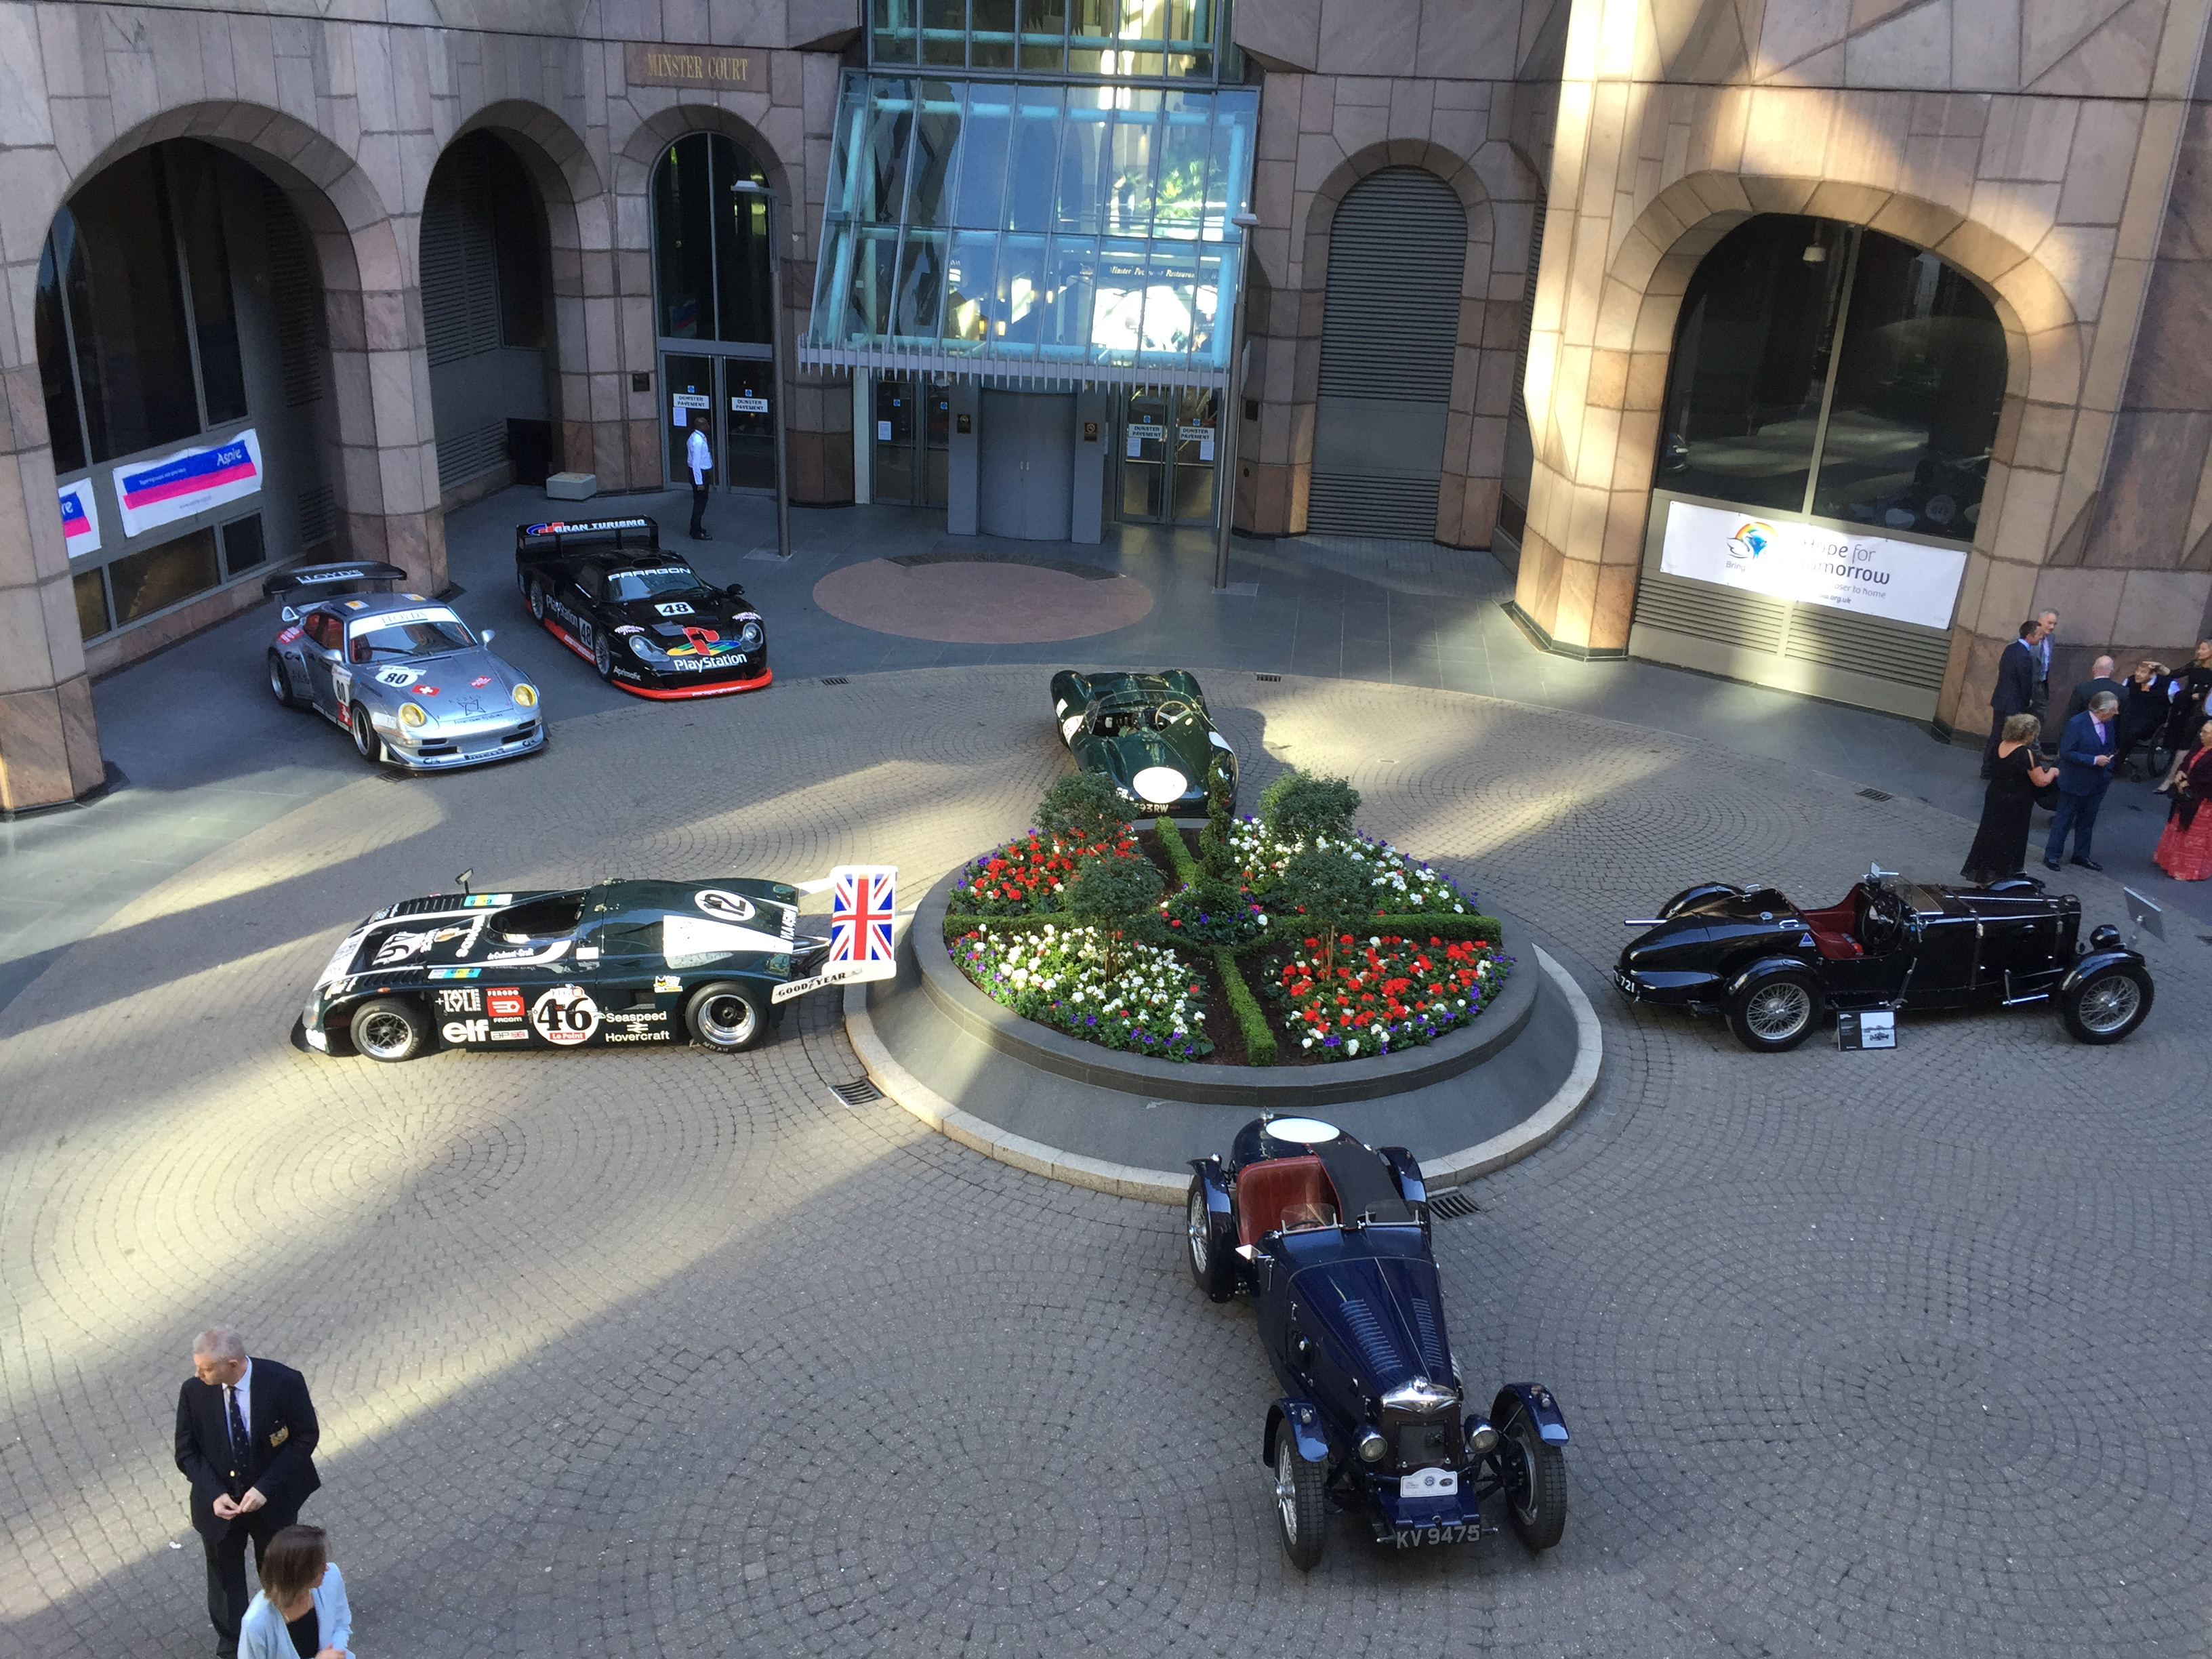 Le Mans cars in the courtyard